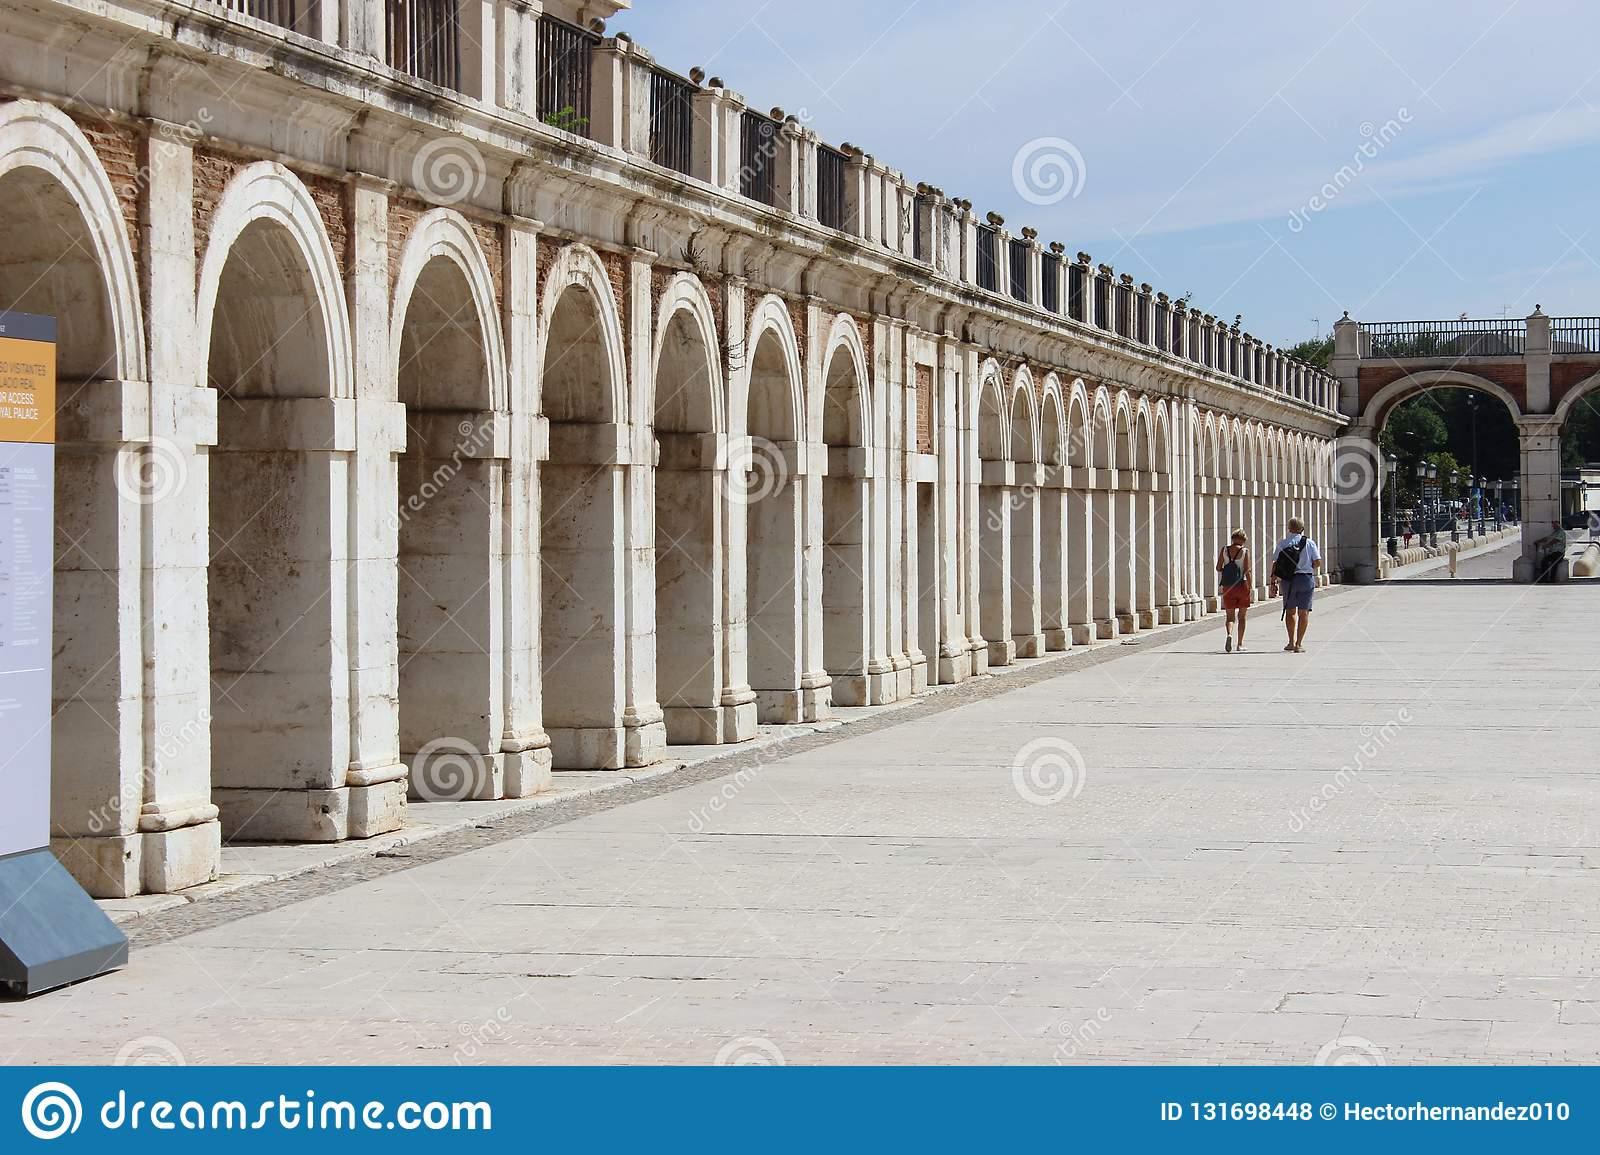 Stone arches in Aranjuez, Spain